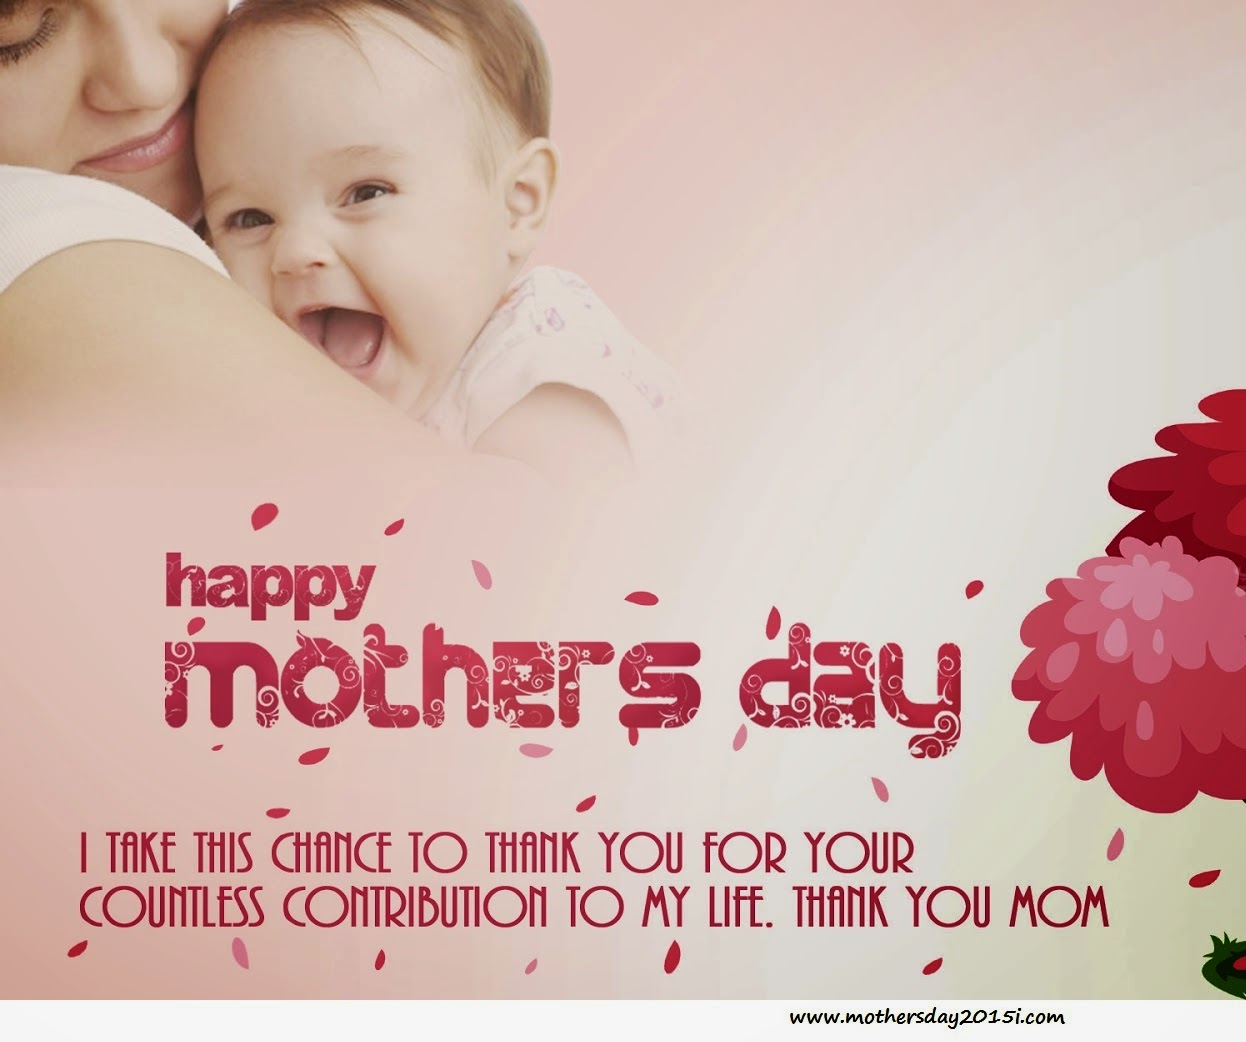 Happy mothers day quotes with wallpaper 2015 happy holi 2017 happy mothers day quotes happy mothers day quotes from daughter happy mothers day 2015 happy mothers day poem happy mothers day wishes happy mothers kristyandbryce Images